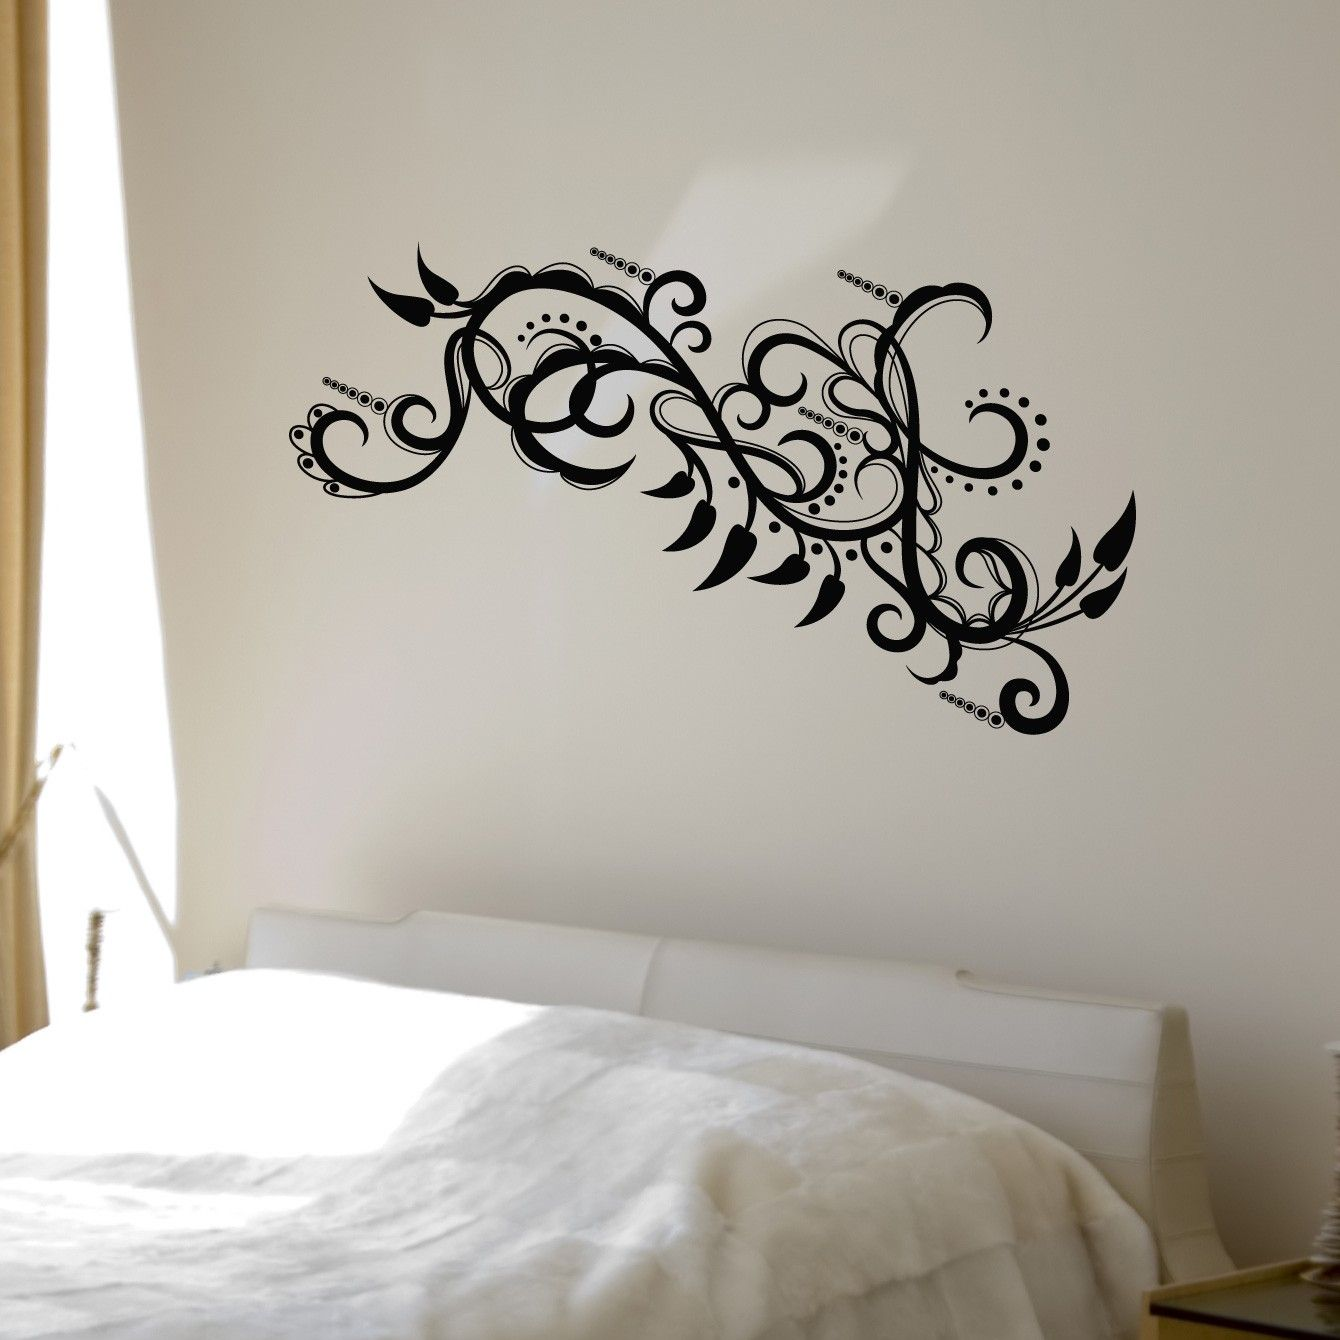 paisley Wall Decals | Paisley Flowers and Intricate Swirls - Wall Decals - BLACK & S A L E - Paisley Flowers and Intricate Swirls - Wall Decals - BLACK ...